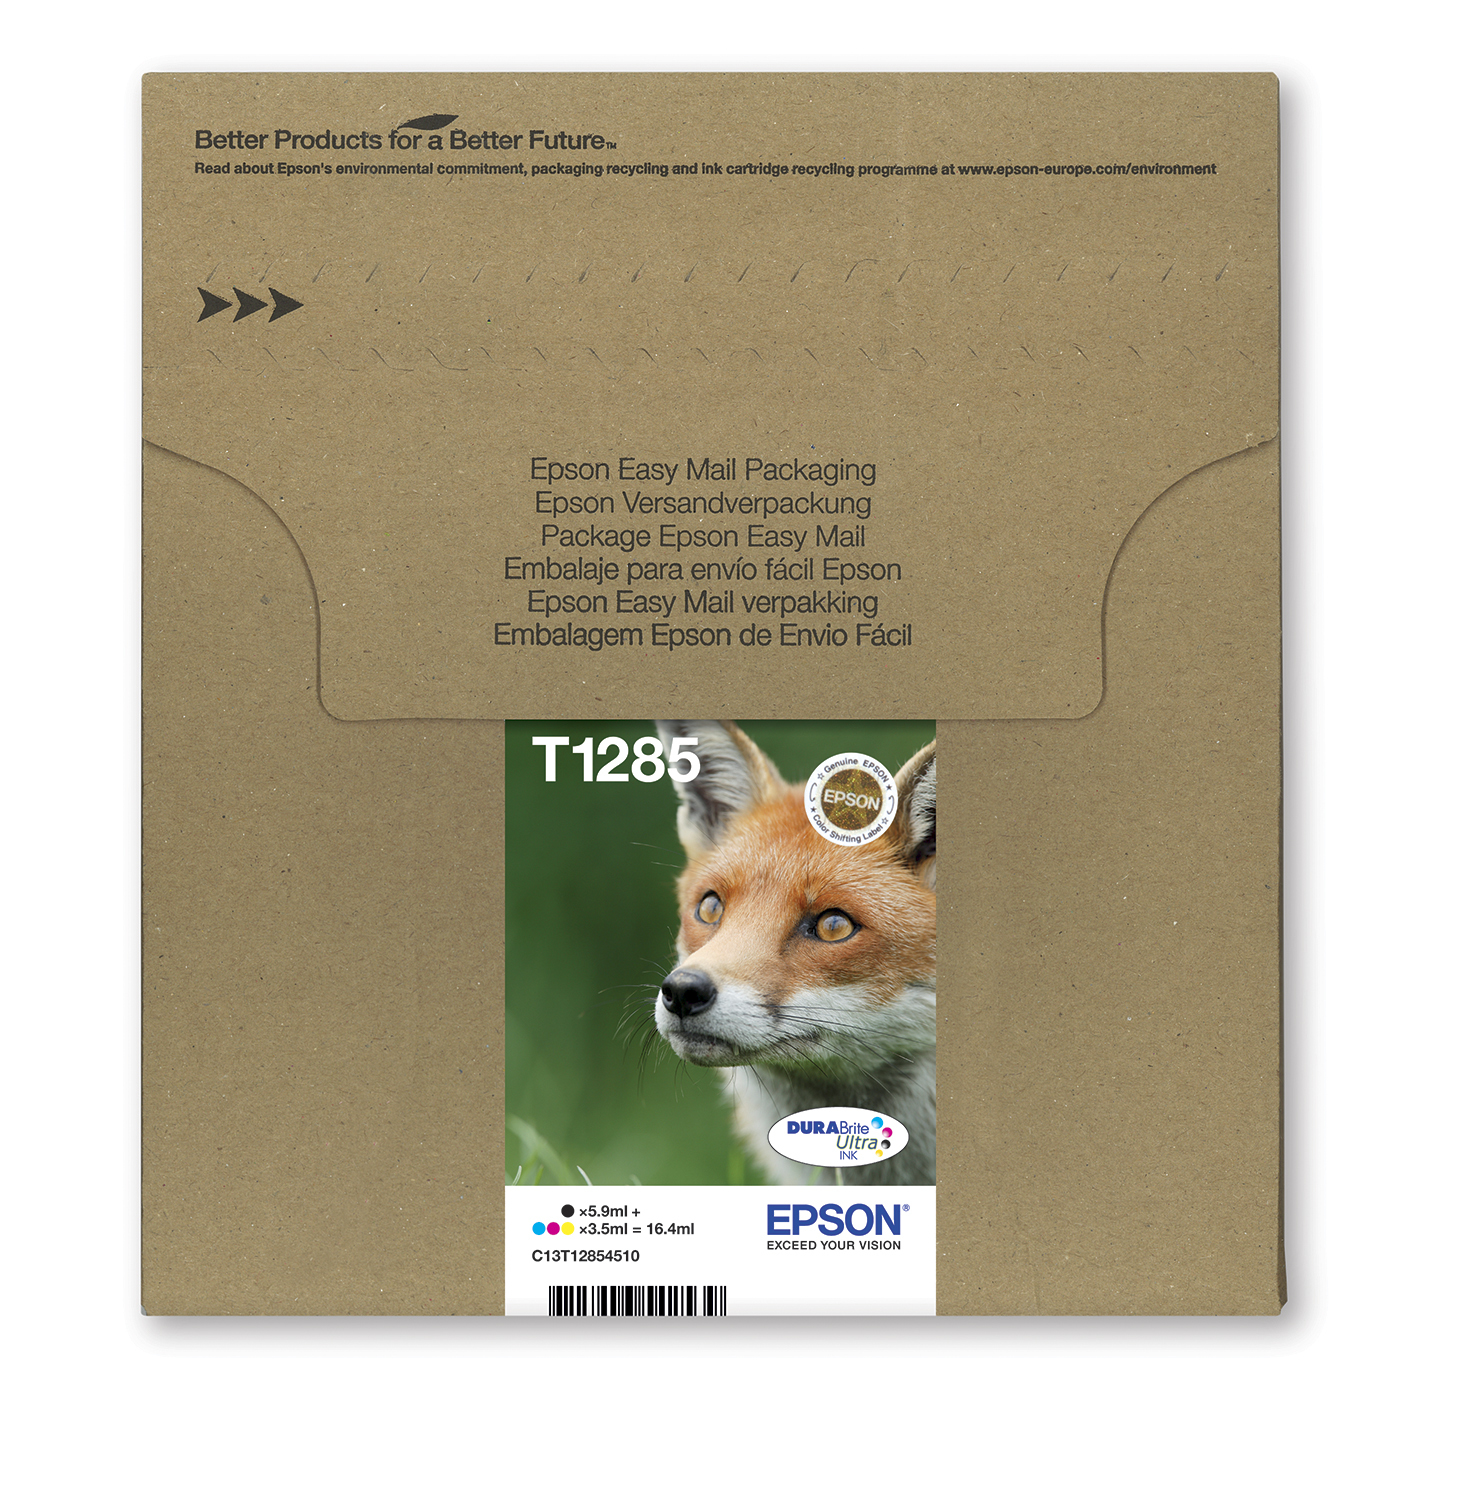 Epson Fox Multipack 4-colours T128 EasyMail